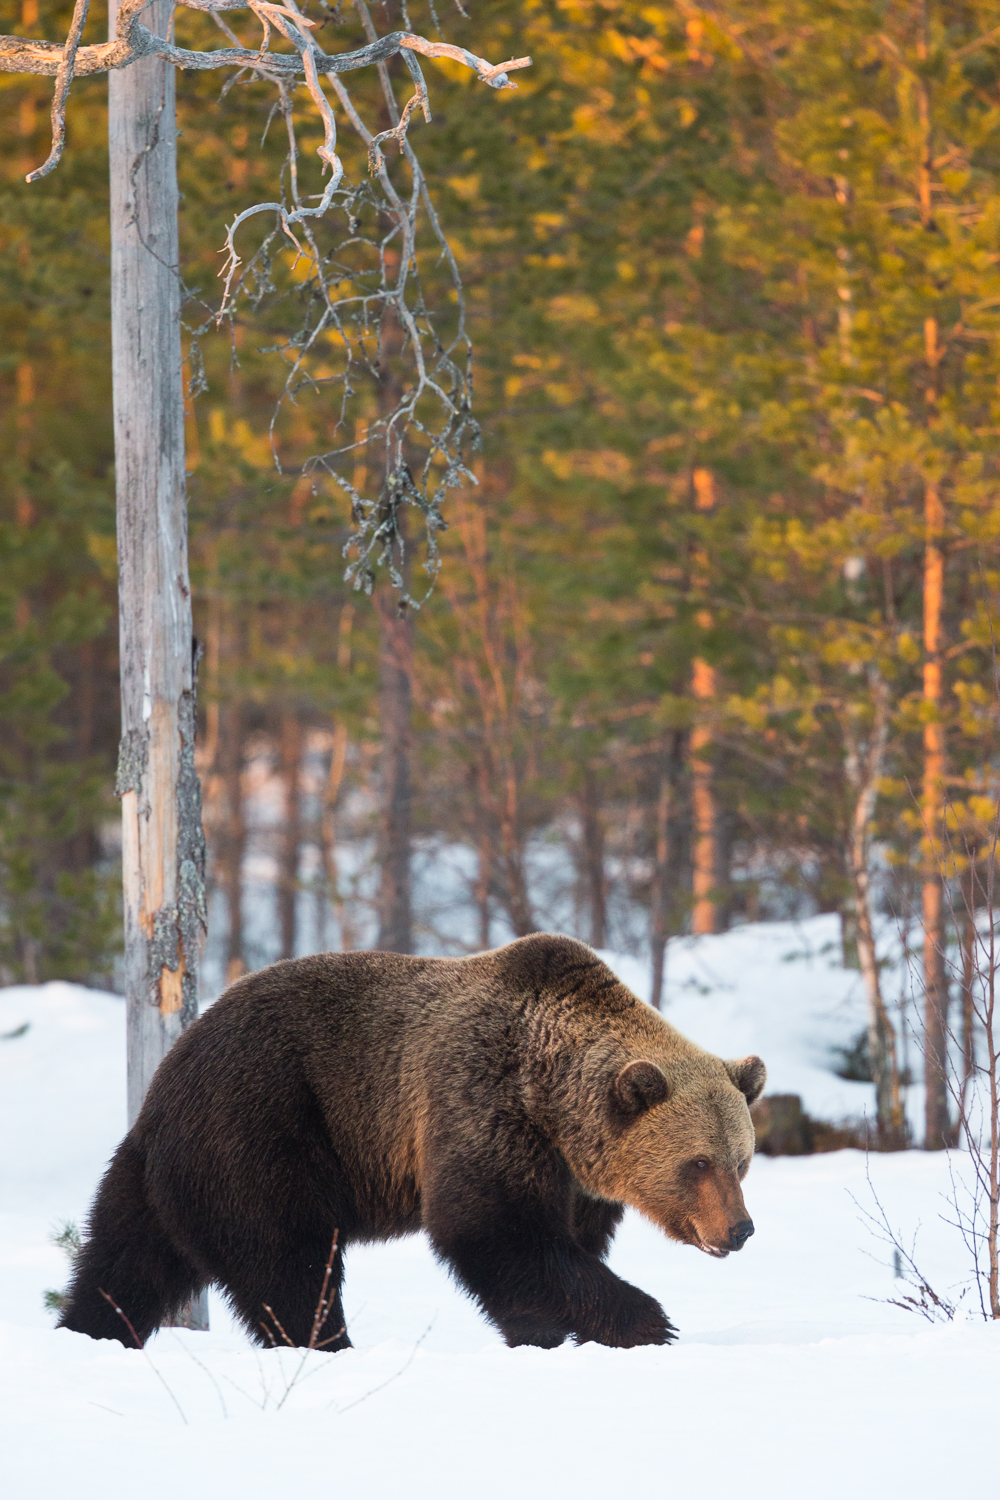 Brown bear photography tour Finland-11.jpg